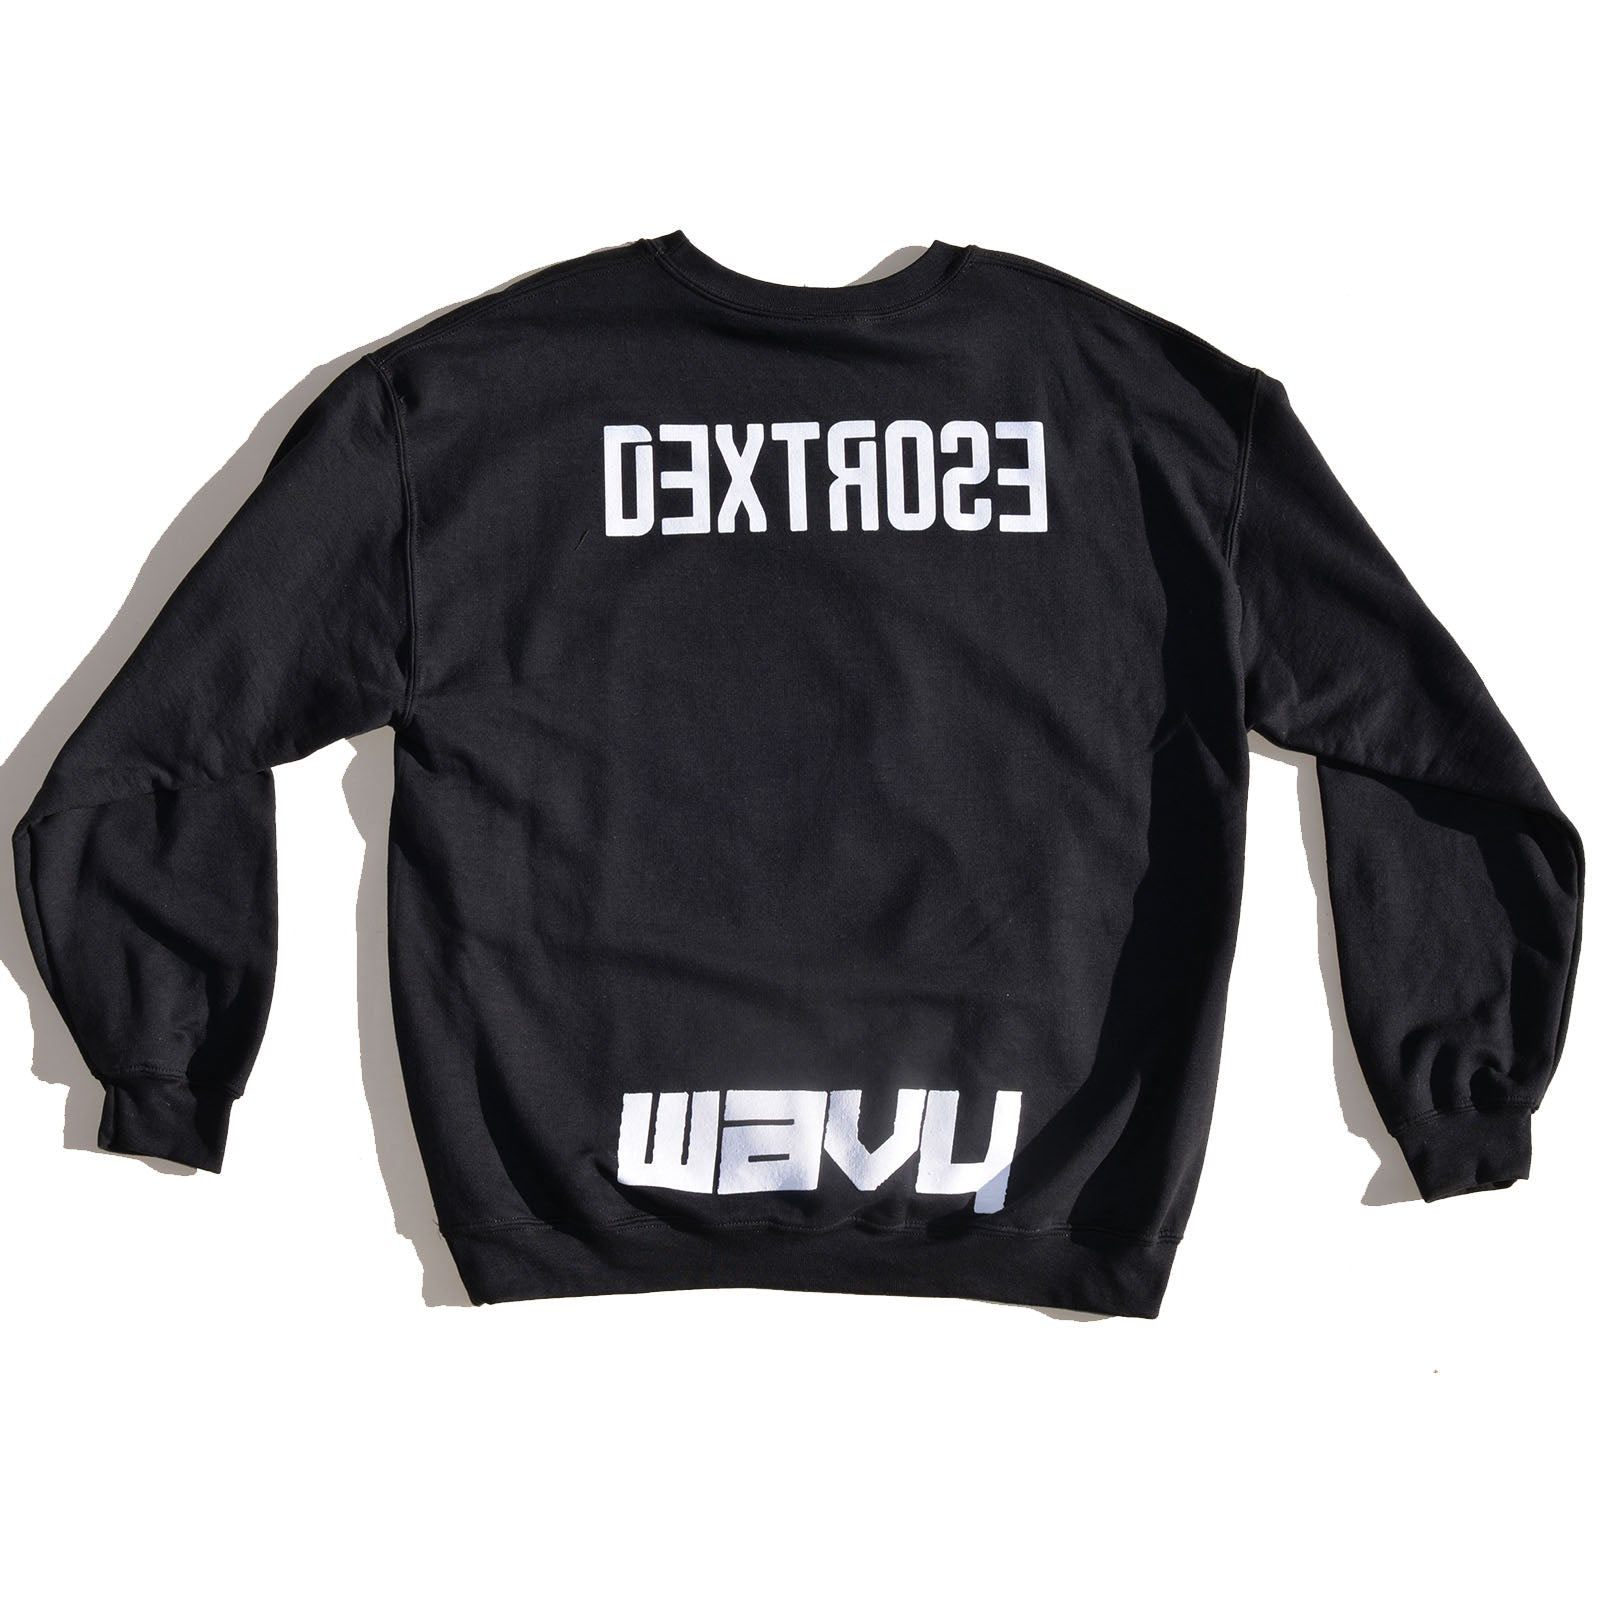 "Dextrose Bowl Cut ""Brown"" Crewneck - Black"